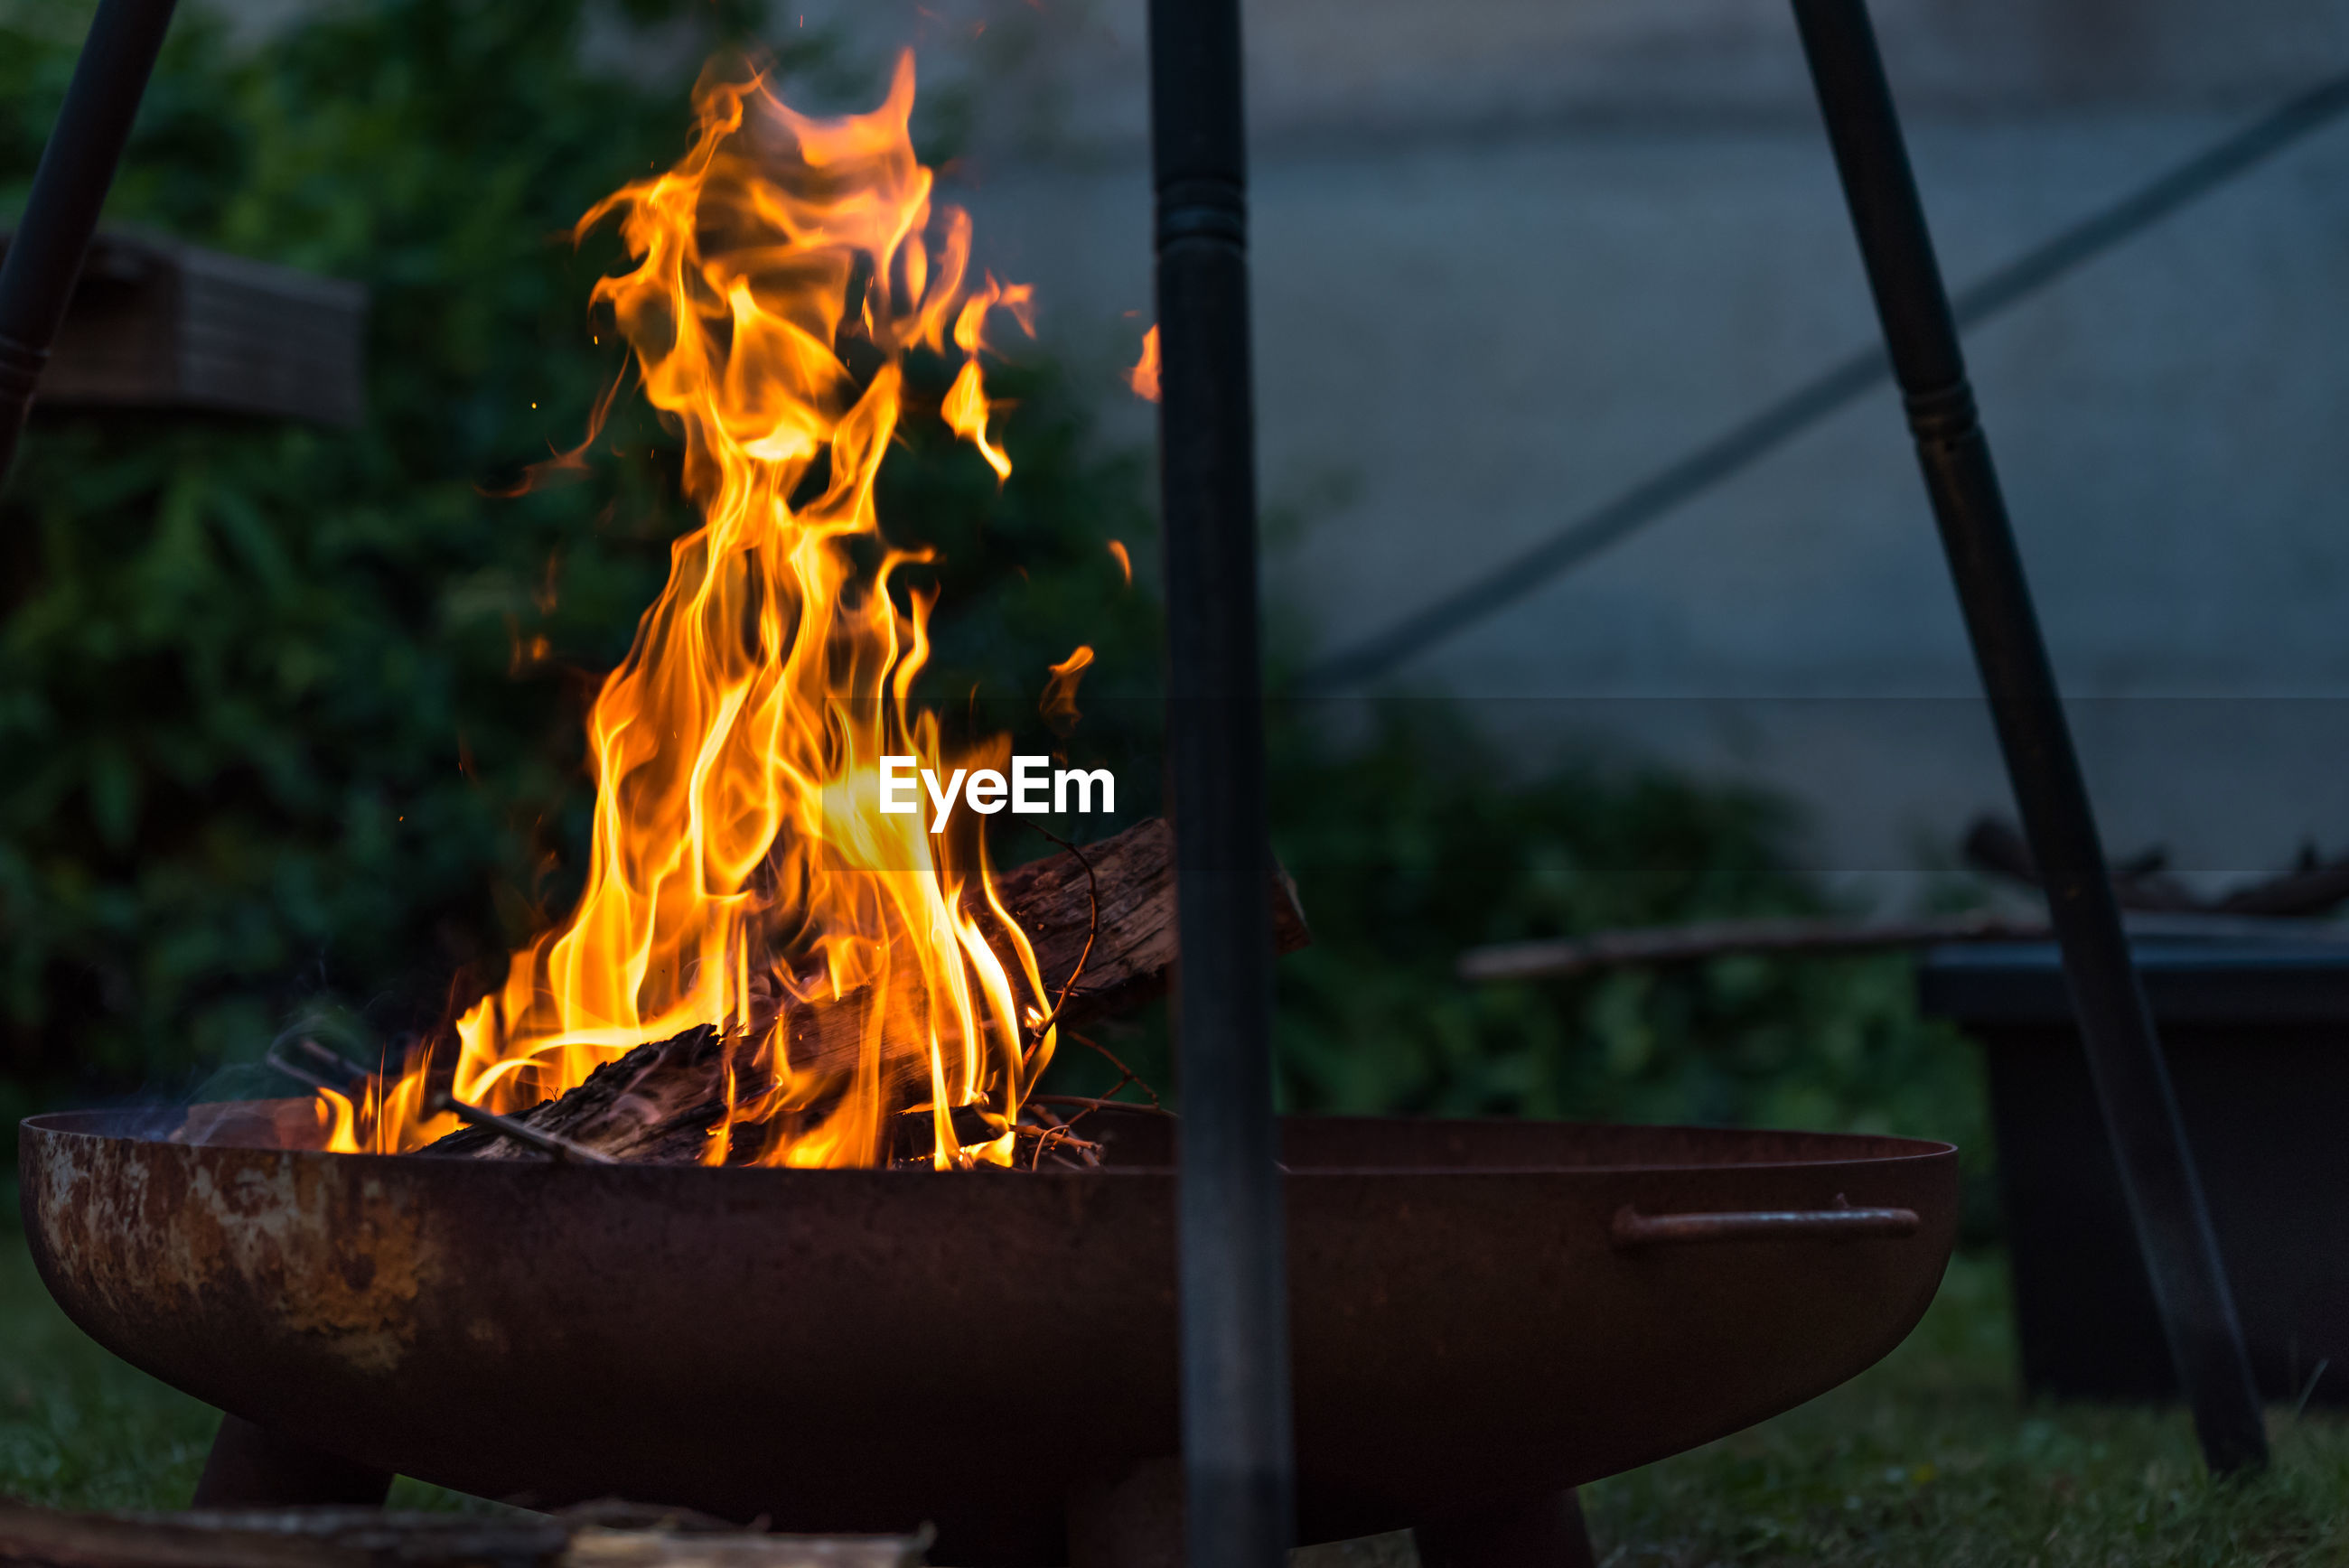 CLOSE-UP OF FIRE BURNING ON PLANT